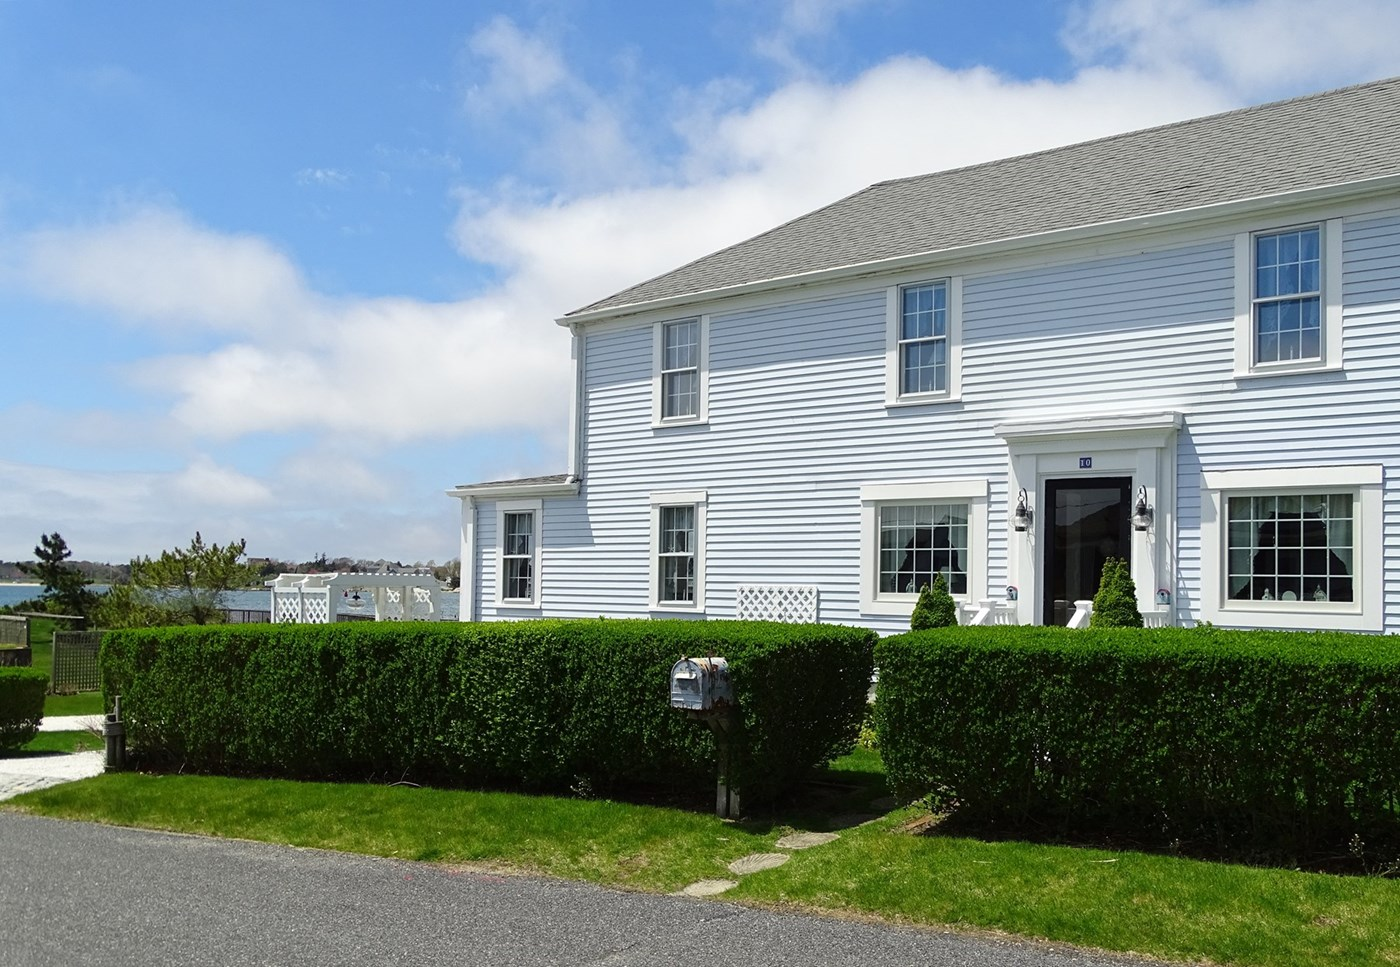 Yarmouth Vacation Rental home in Cape Cod MA 02673, 2 Private ...